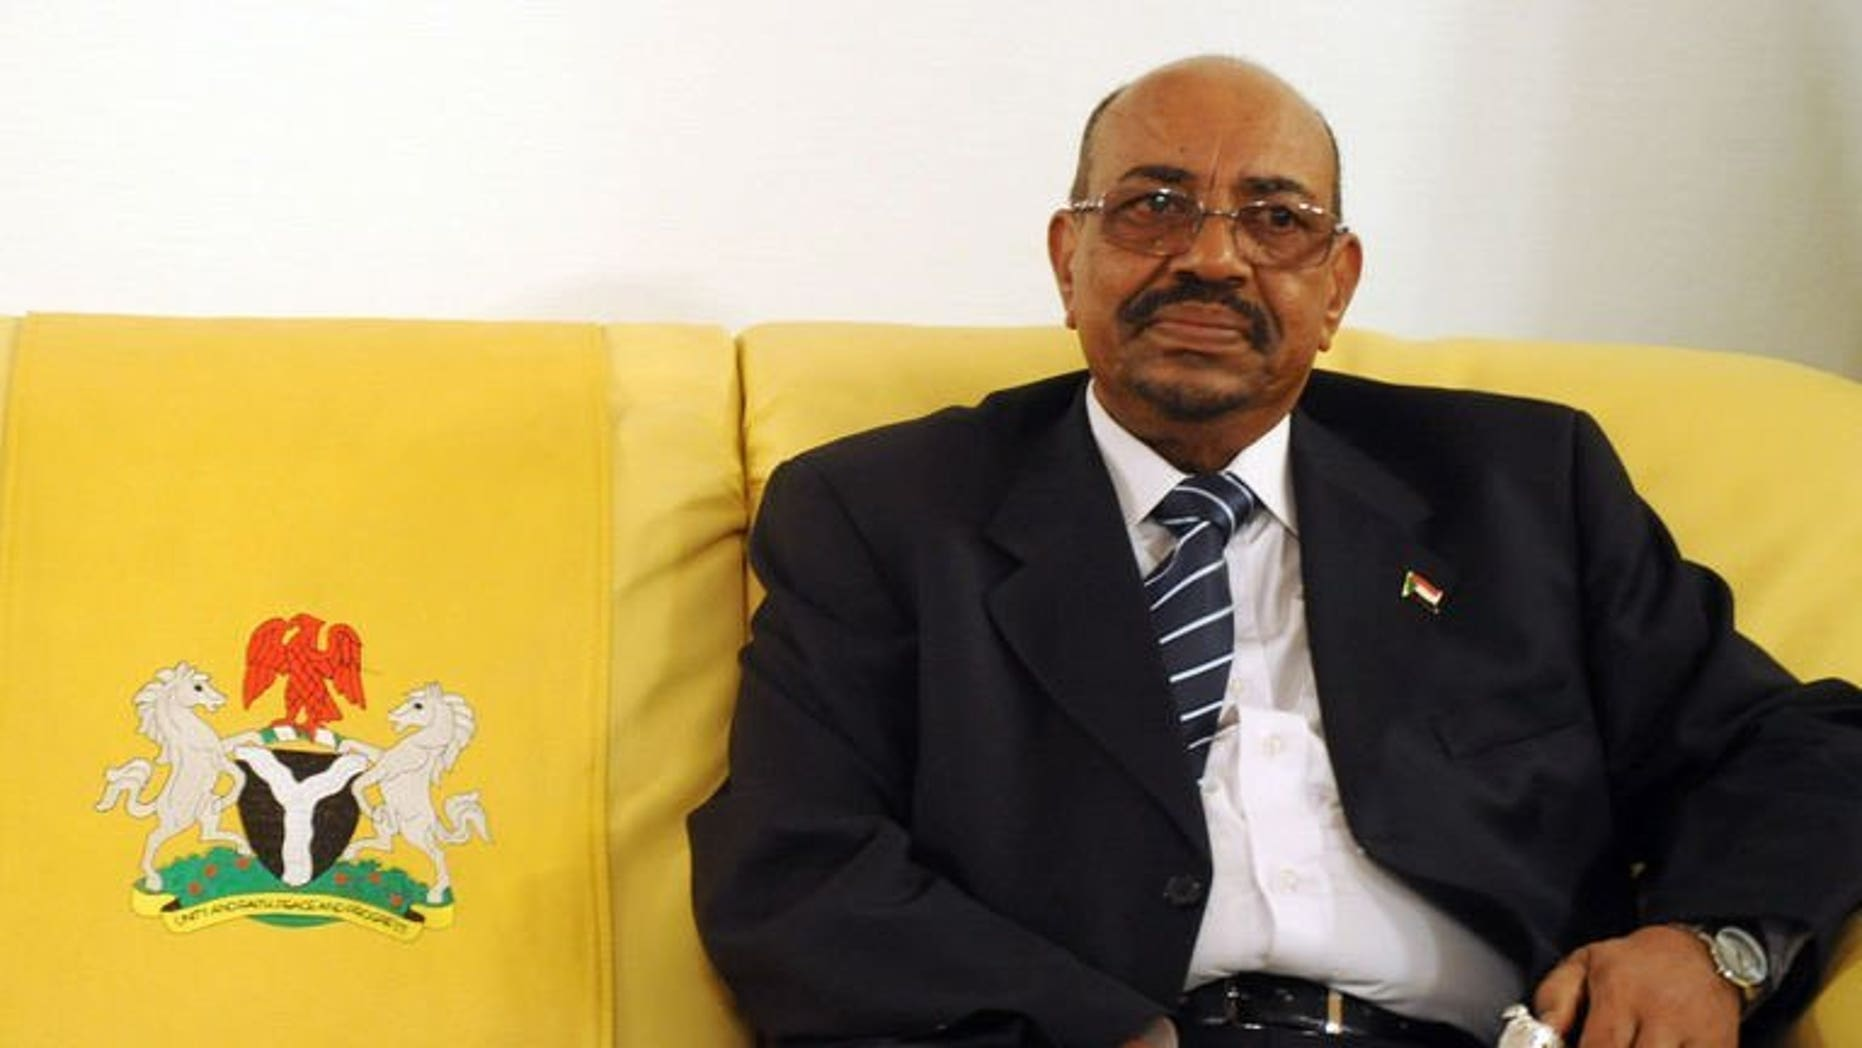 Sudan's President Omar al-Bashir pictured at Nnamdi Azikiwe International Airport in Abuja, Nigeria on July 14, 2013. Bashir has left Nigeria after demands for his arrest on war crimes charges, an embassy spokesman said Tuesday, though he denied his departure was due to the controversy.